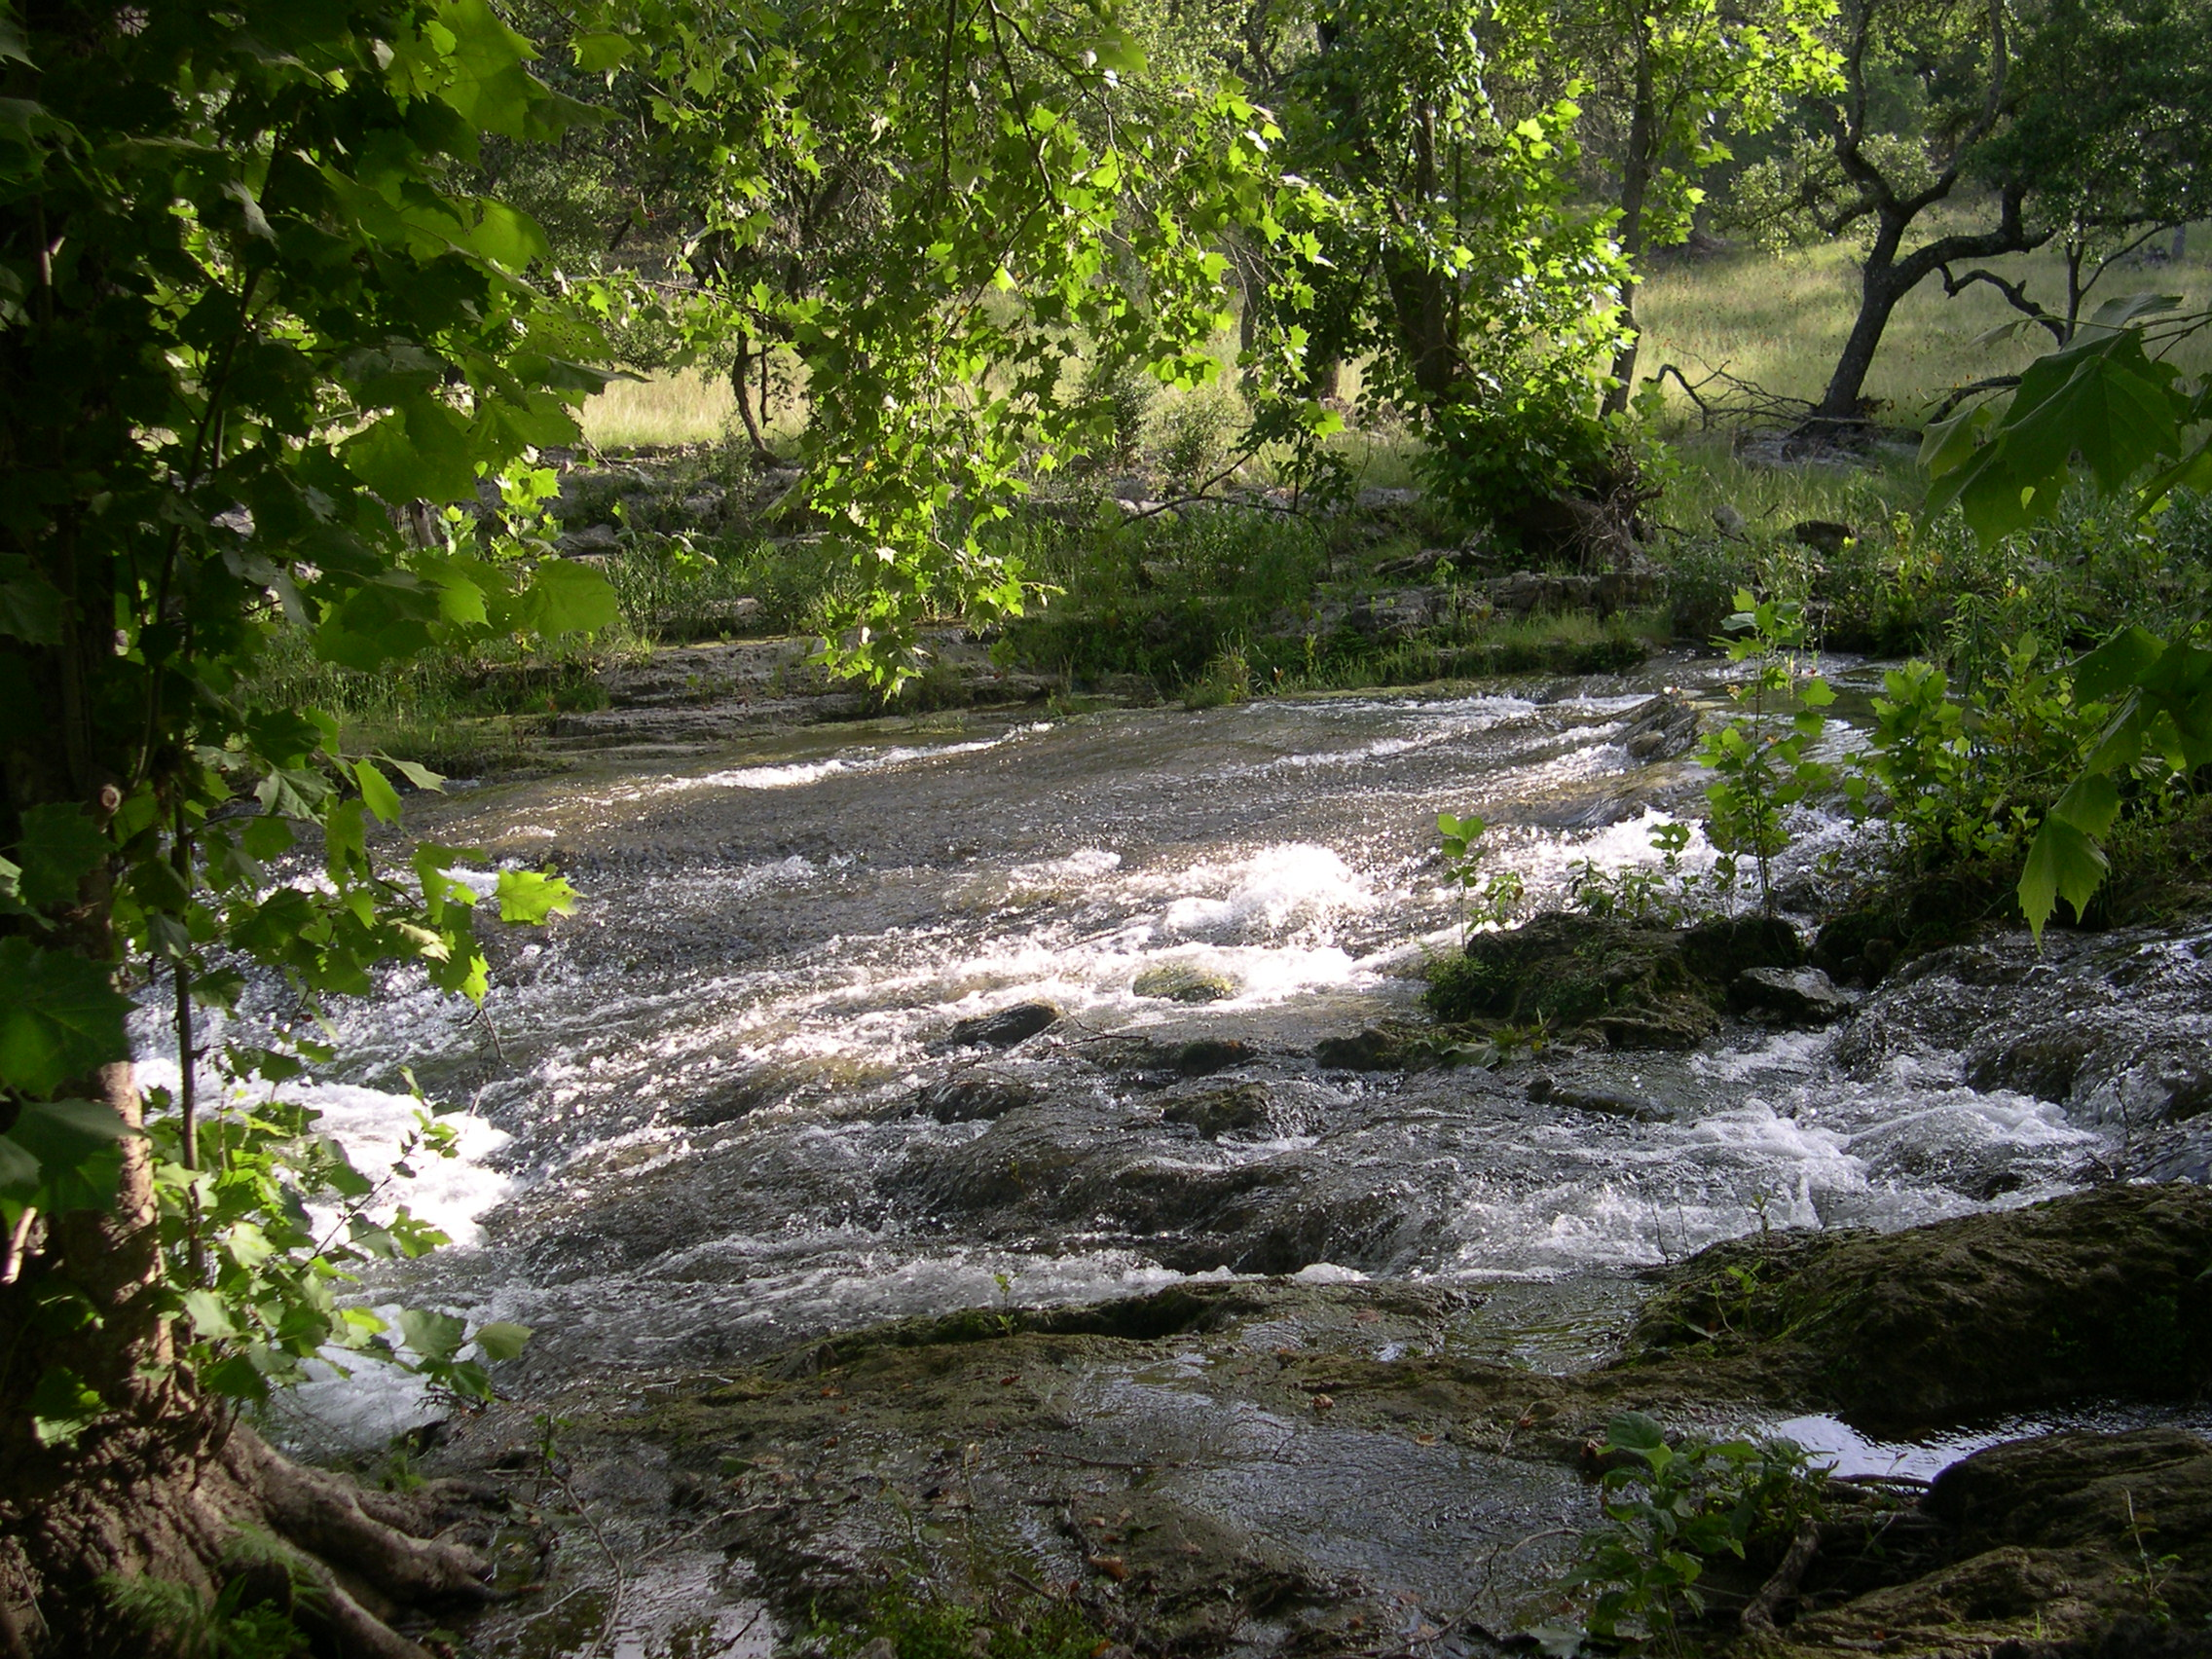 Spring Branch, in Comal County, Texas